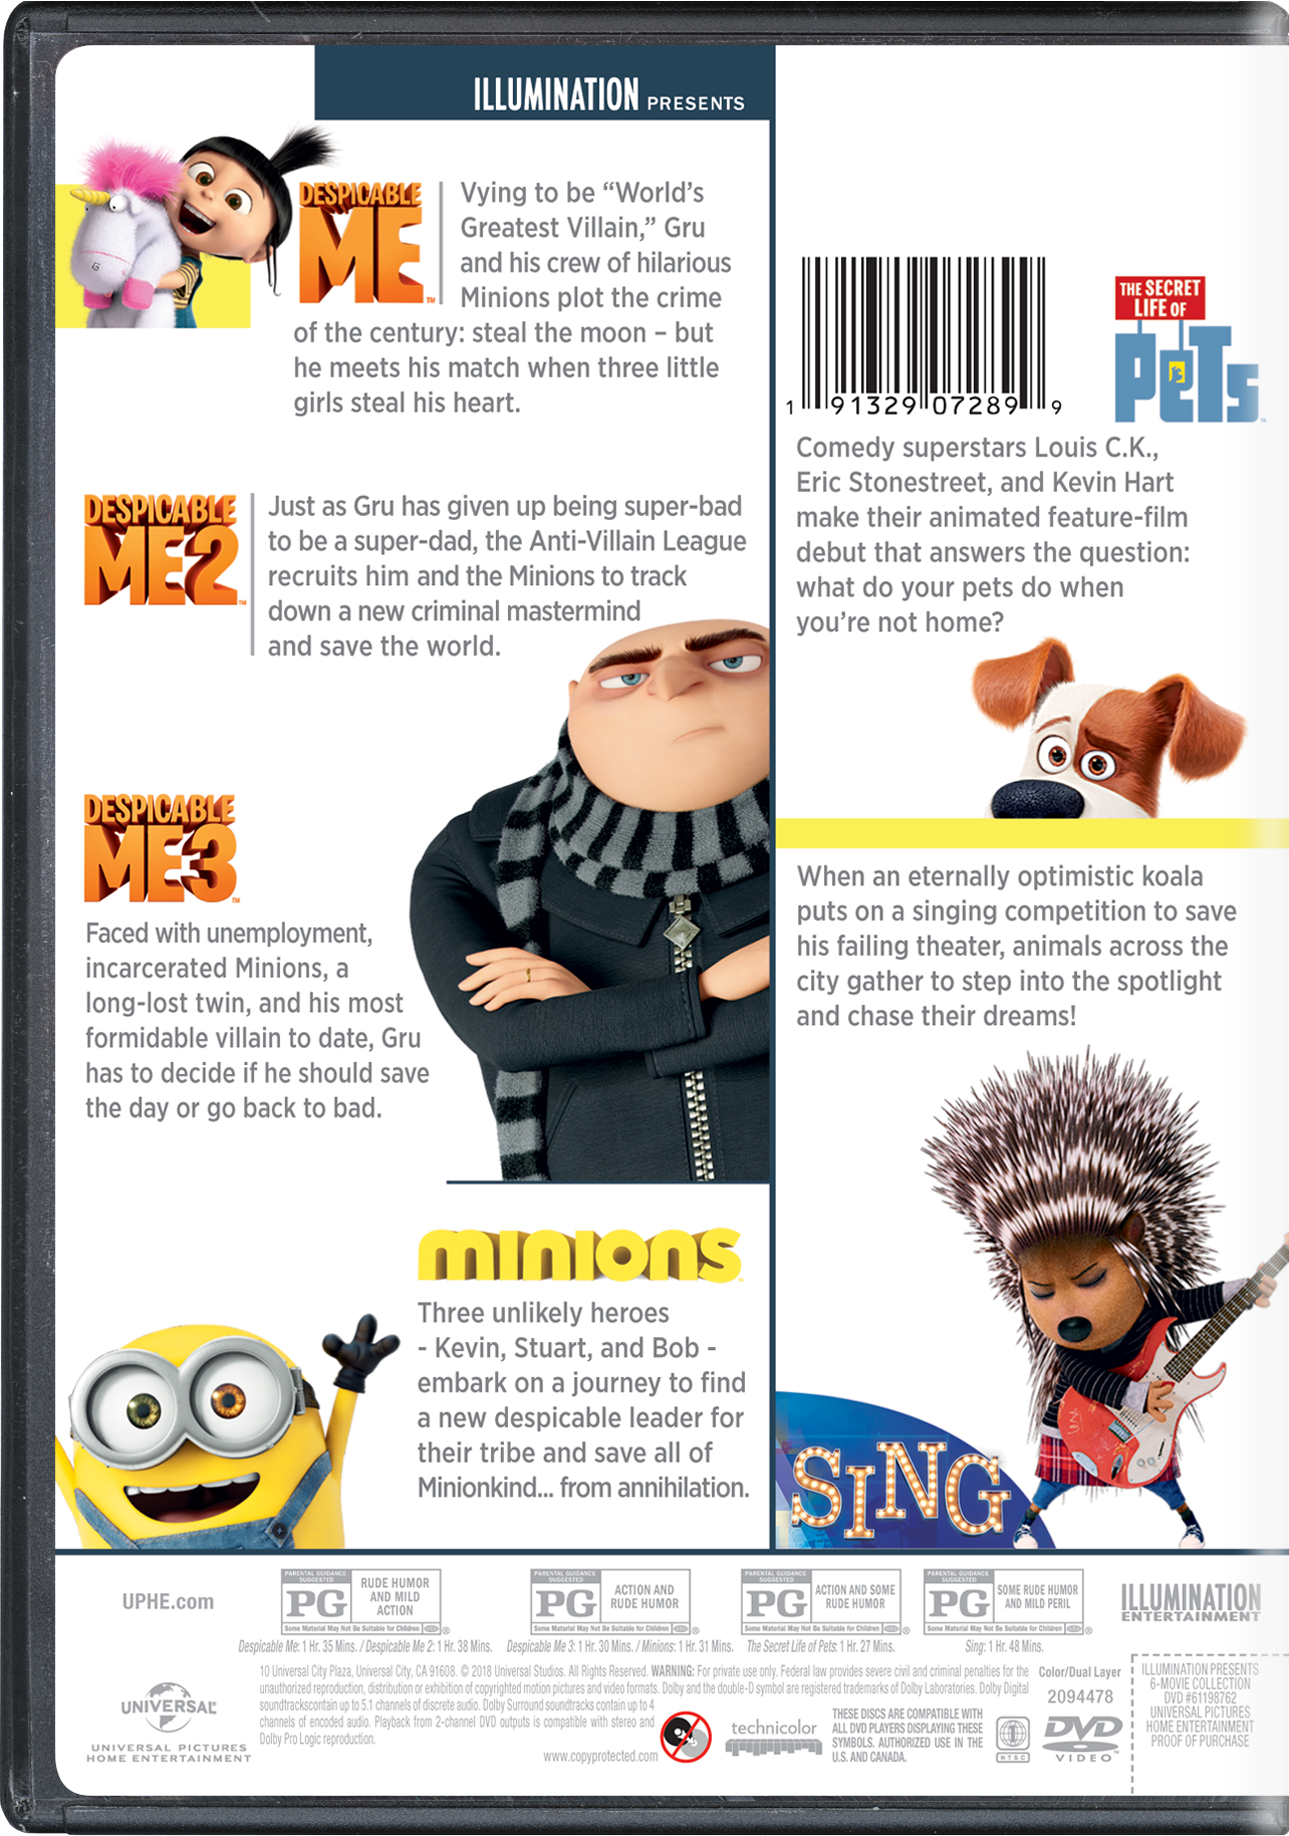 Despicable Me 3 | Movie Page | DVD, Blu-ray, Digital HD, On